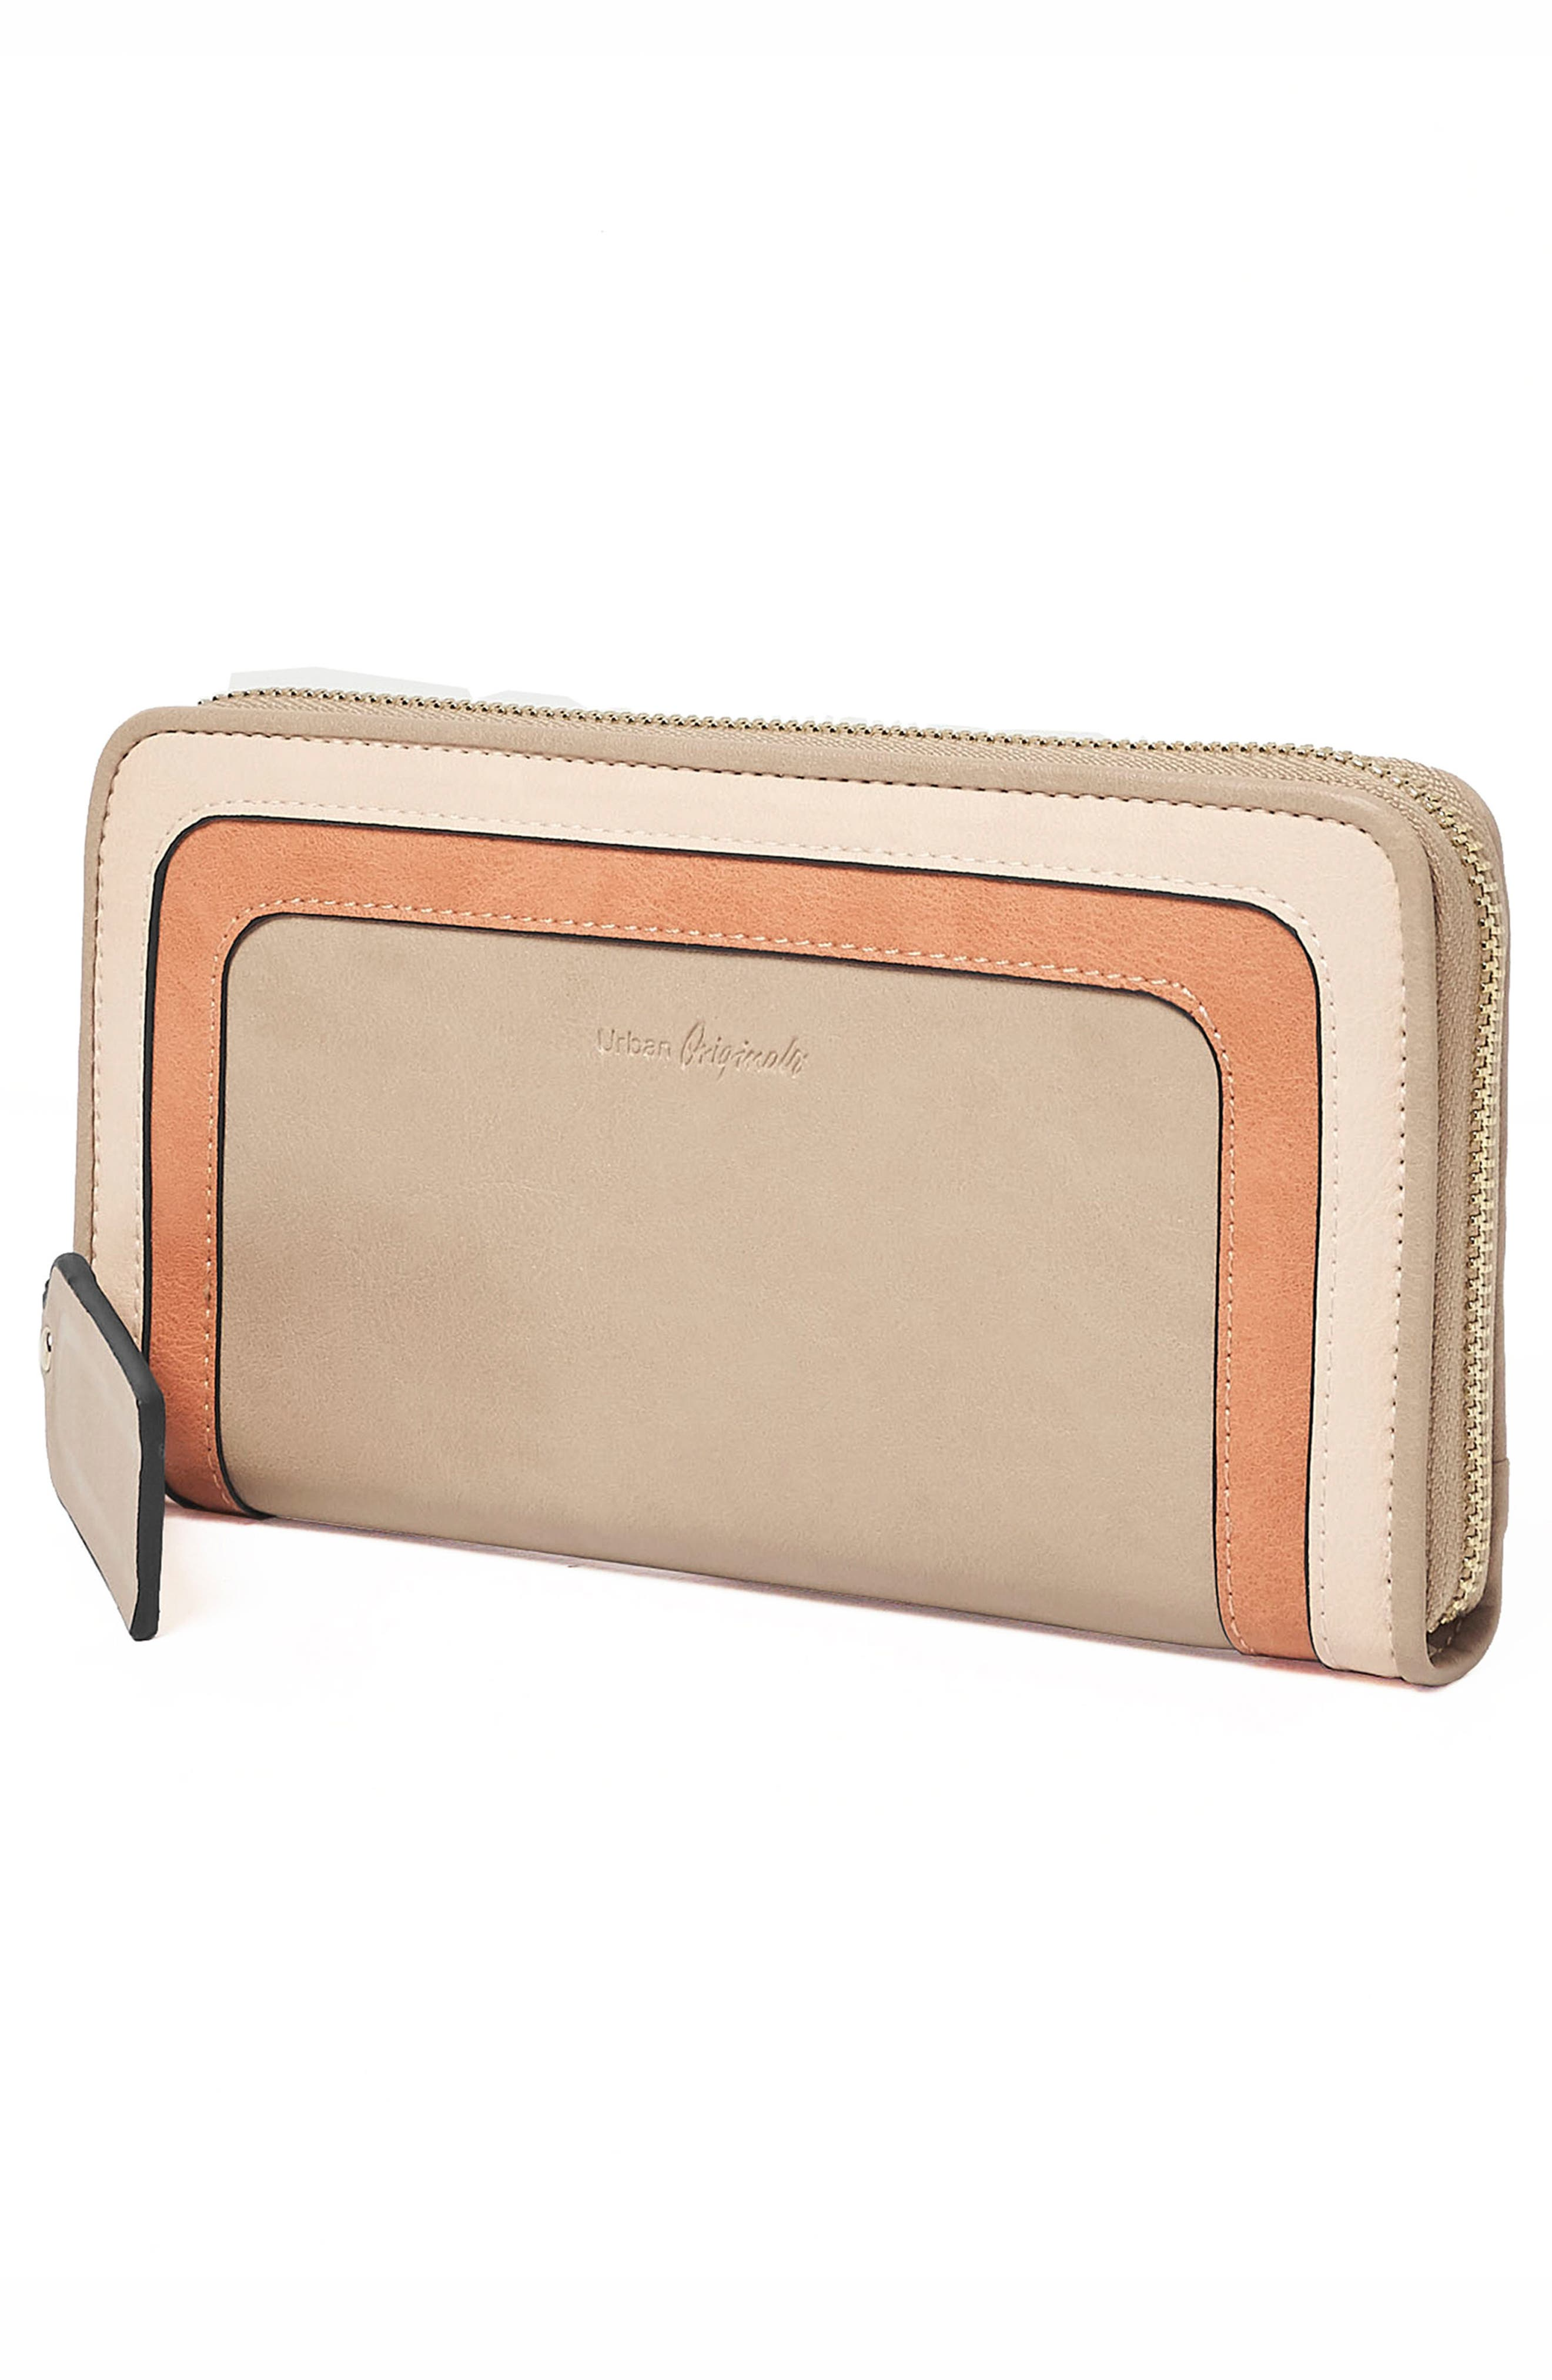 Drama Queen Faux Leather Zip Wallet,                             Alternate thumbnail 3, color,                             Taupe